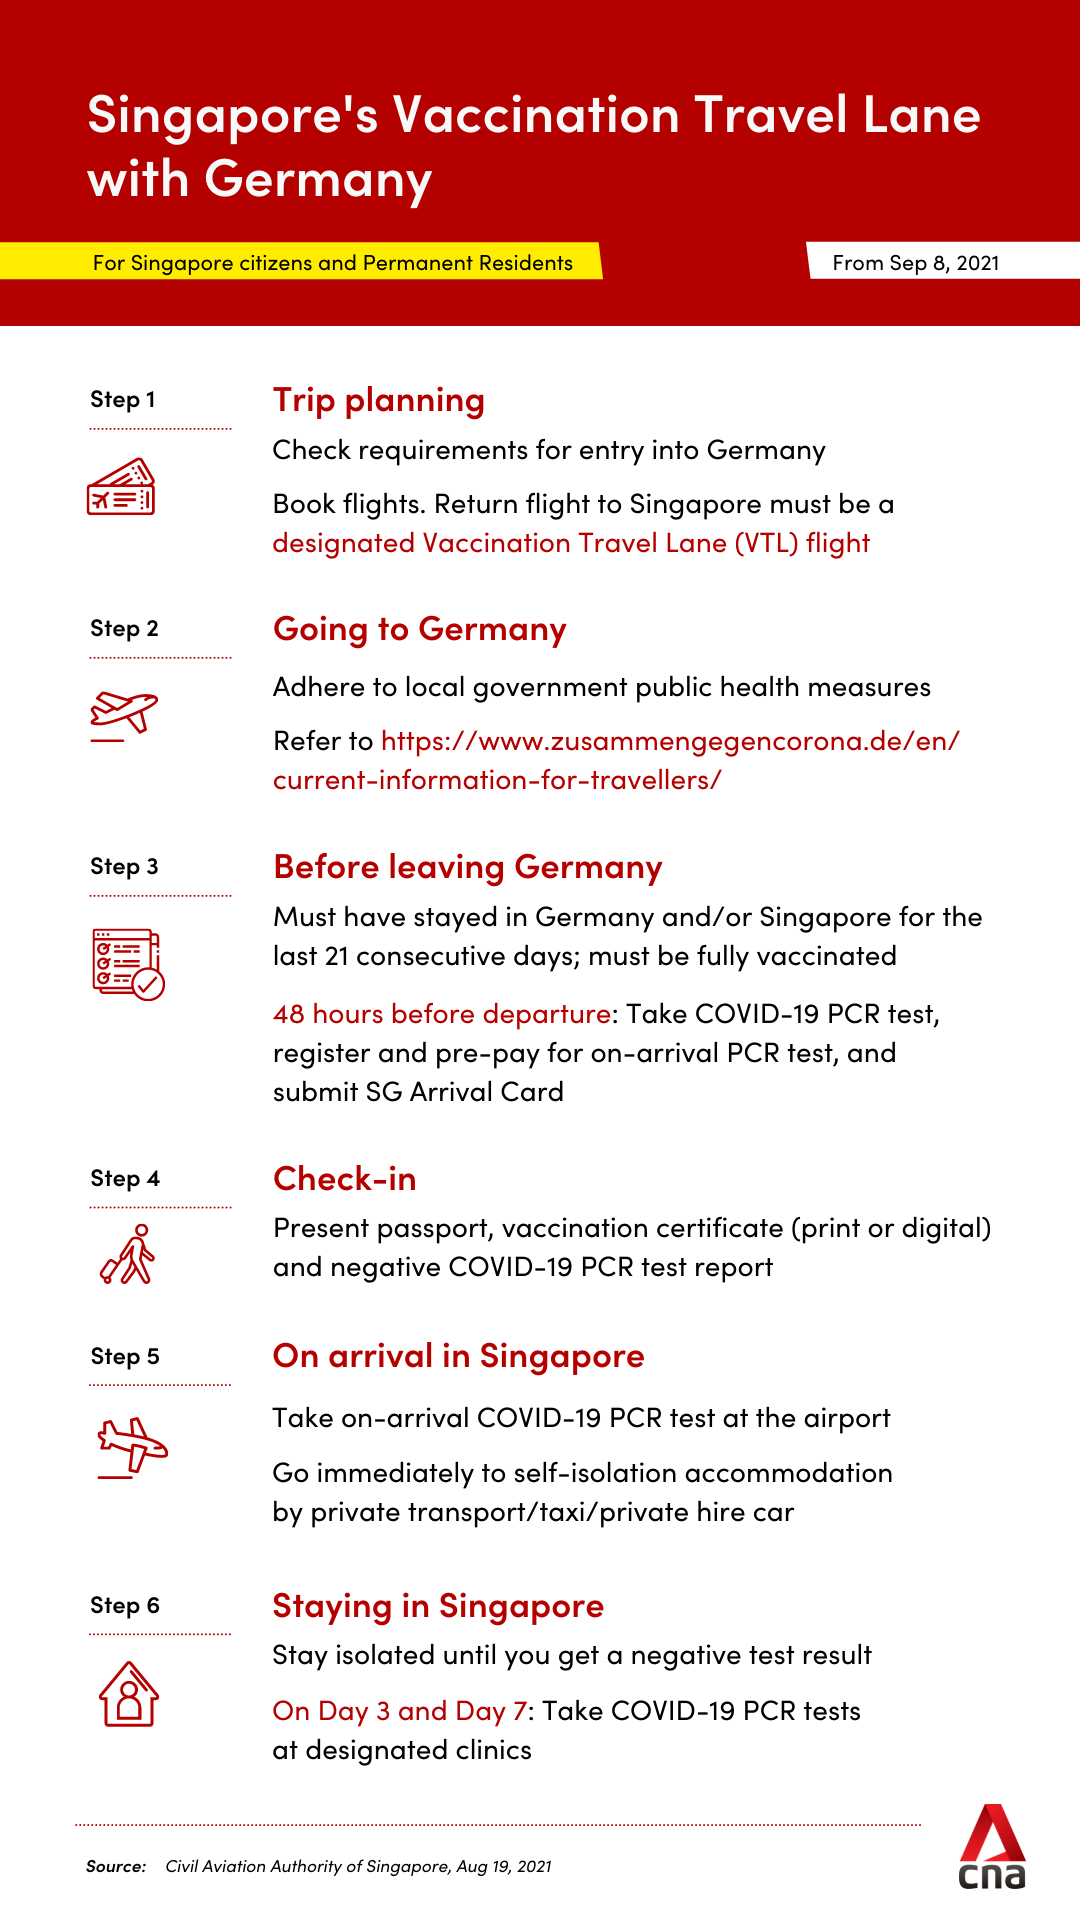 Singapore's vaccinated travel lane with Germany